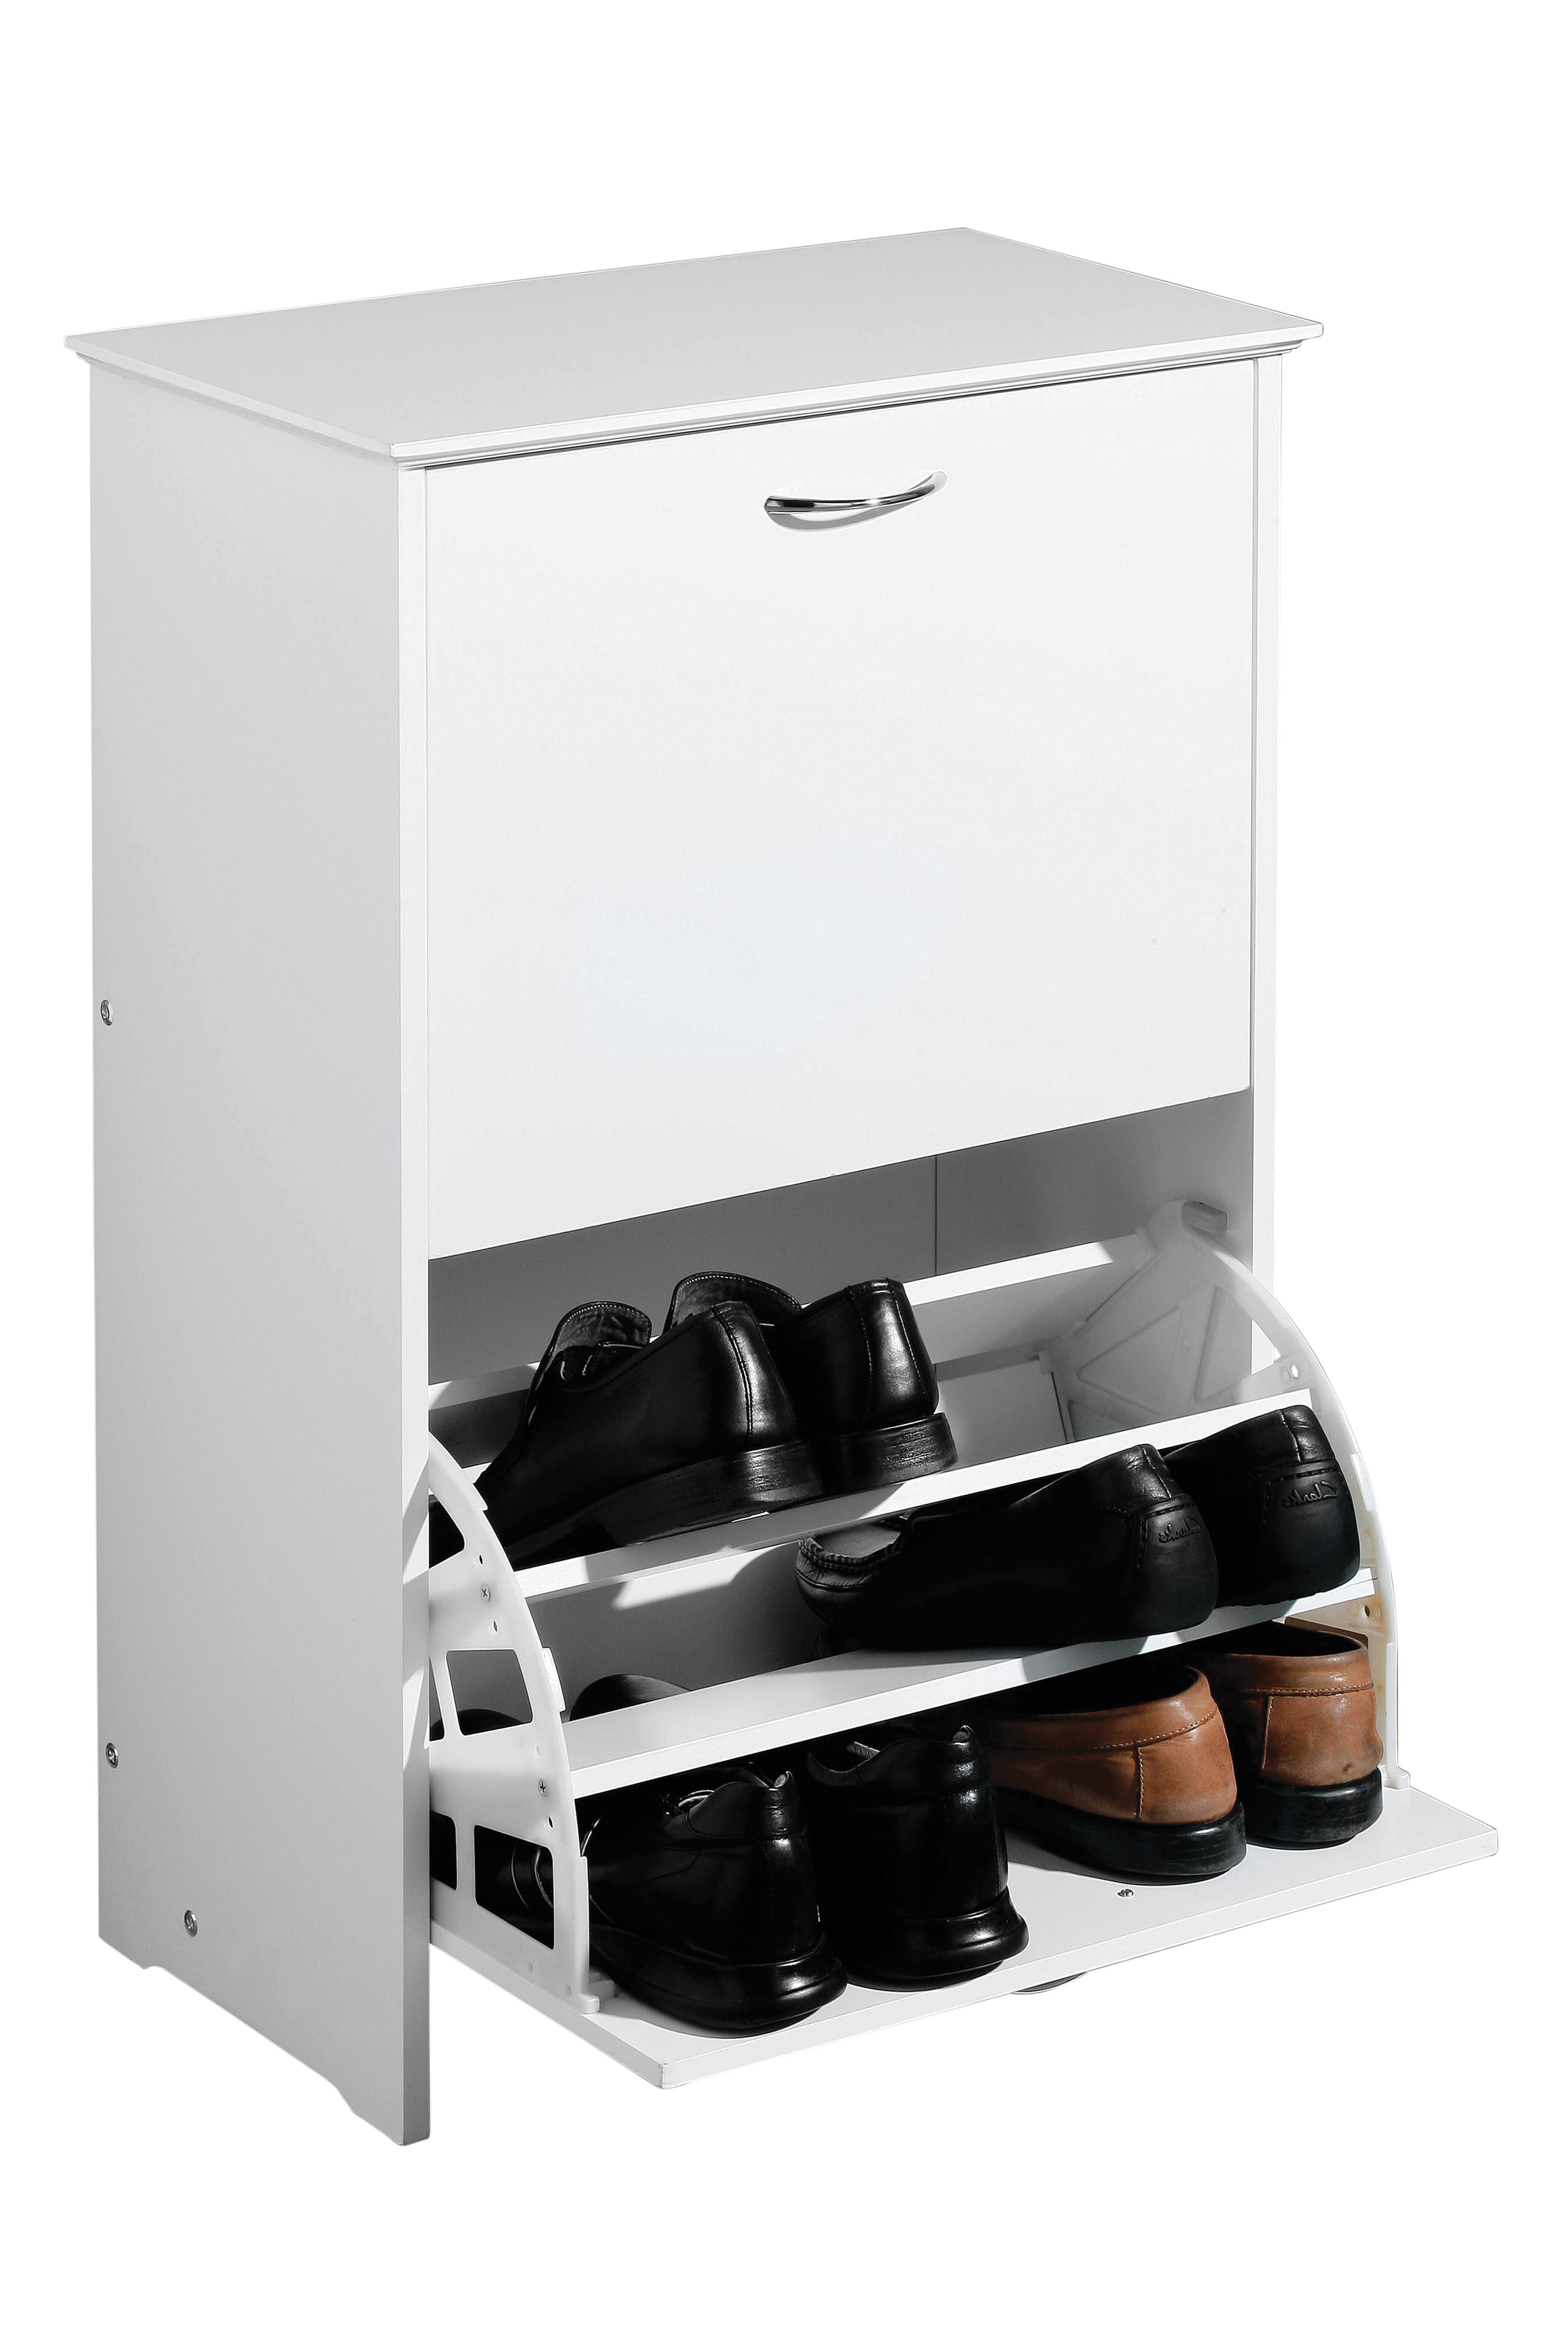 Prime Furnishing 2 Drawer Shoe Cupboard, MDF - White